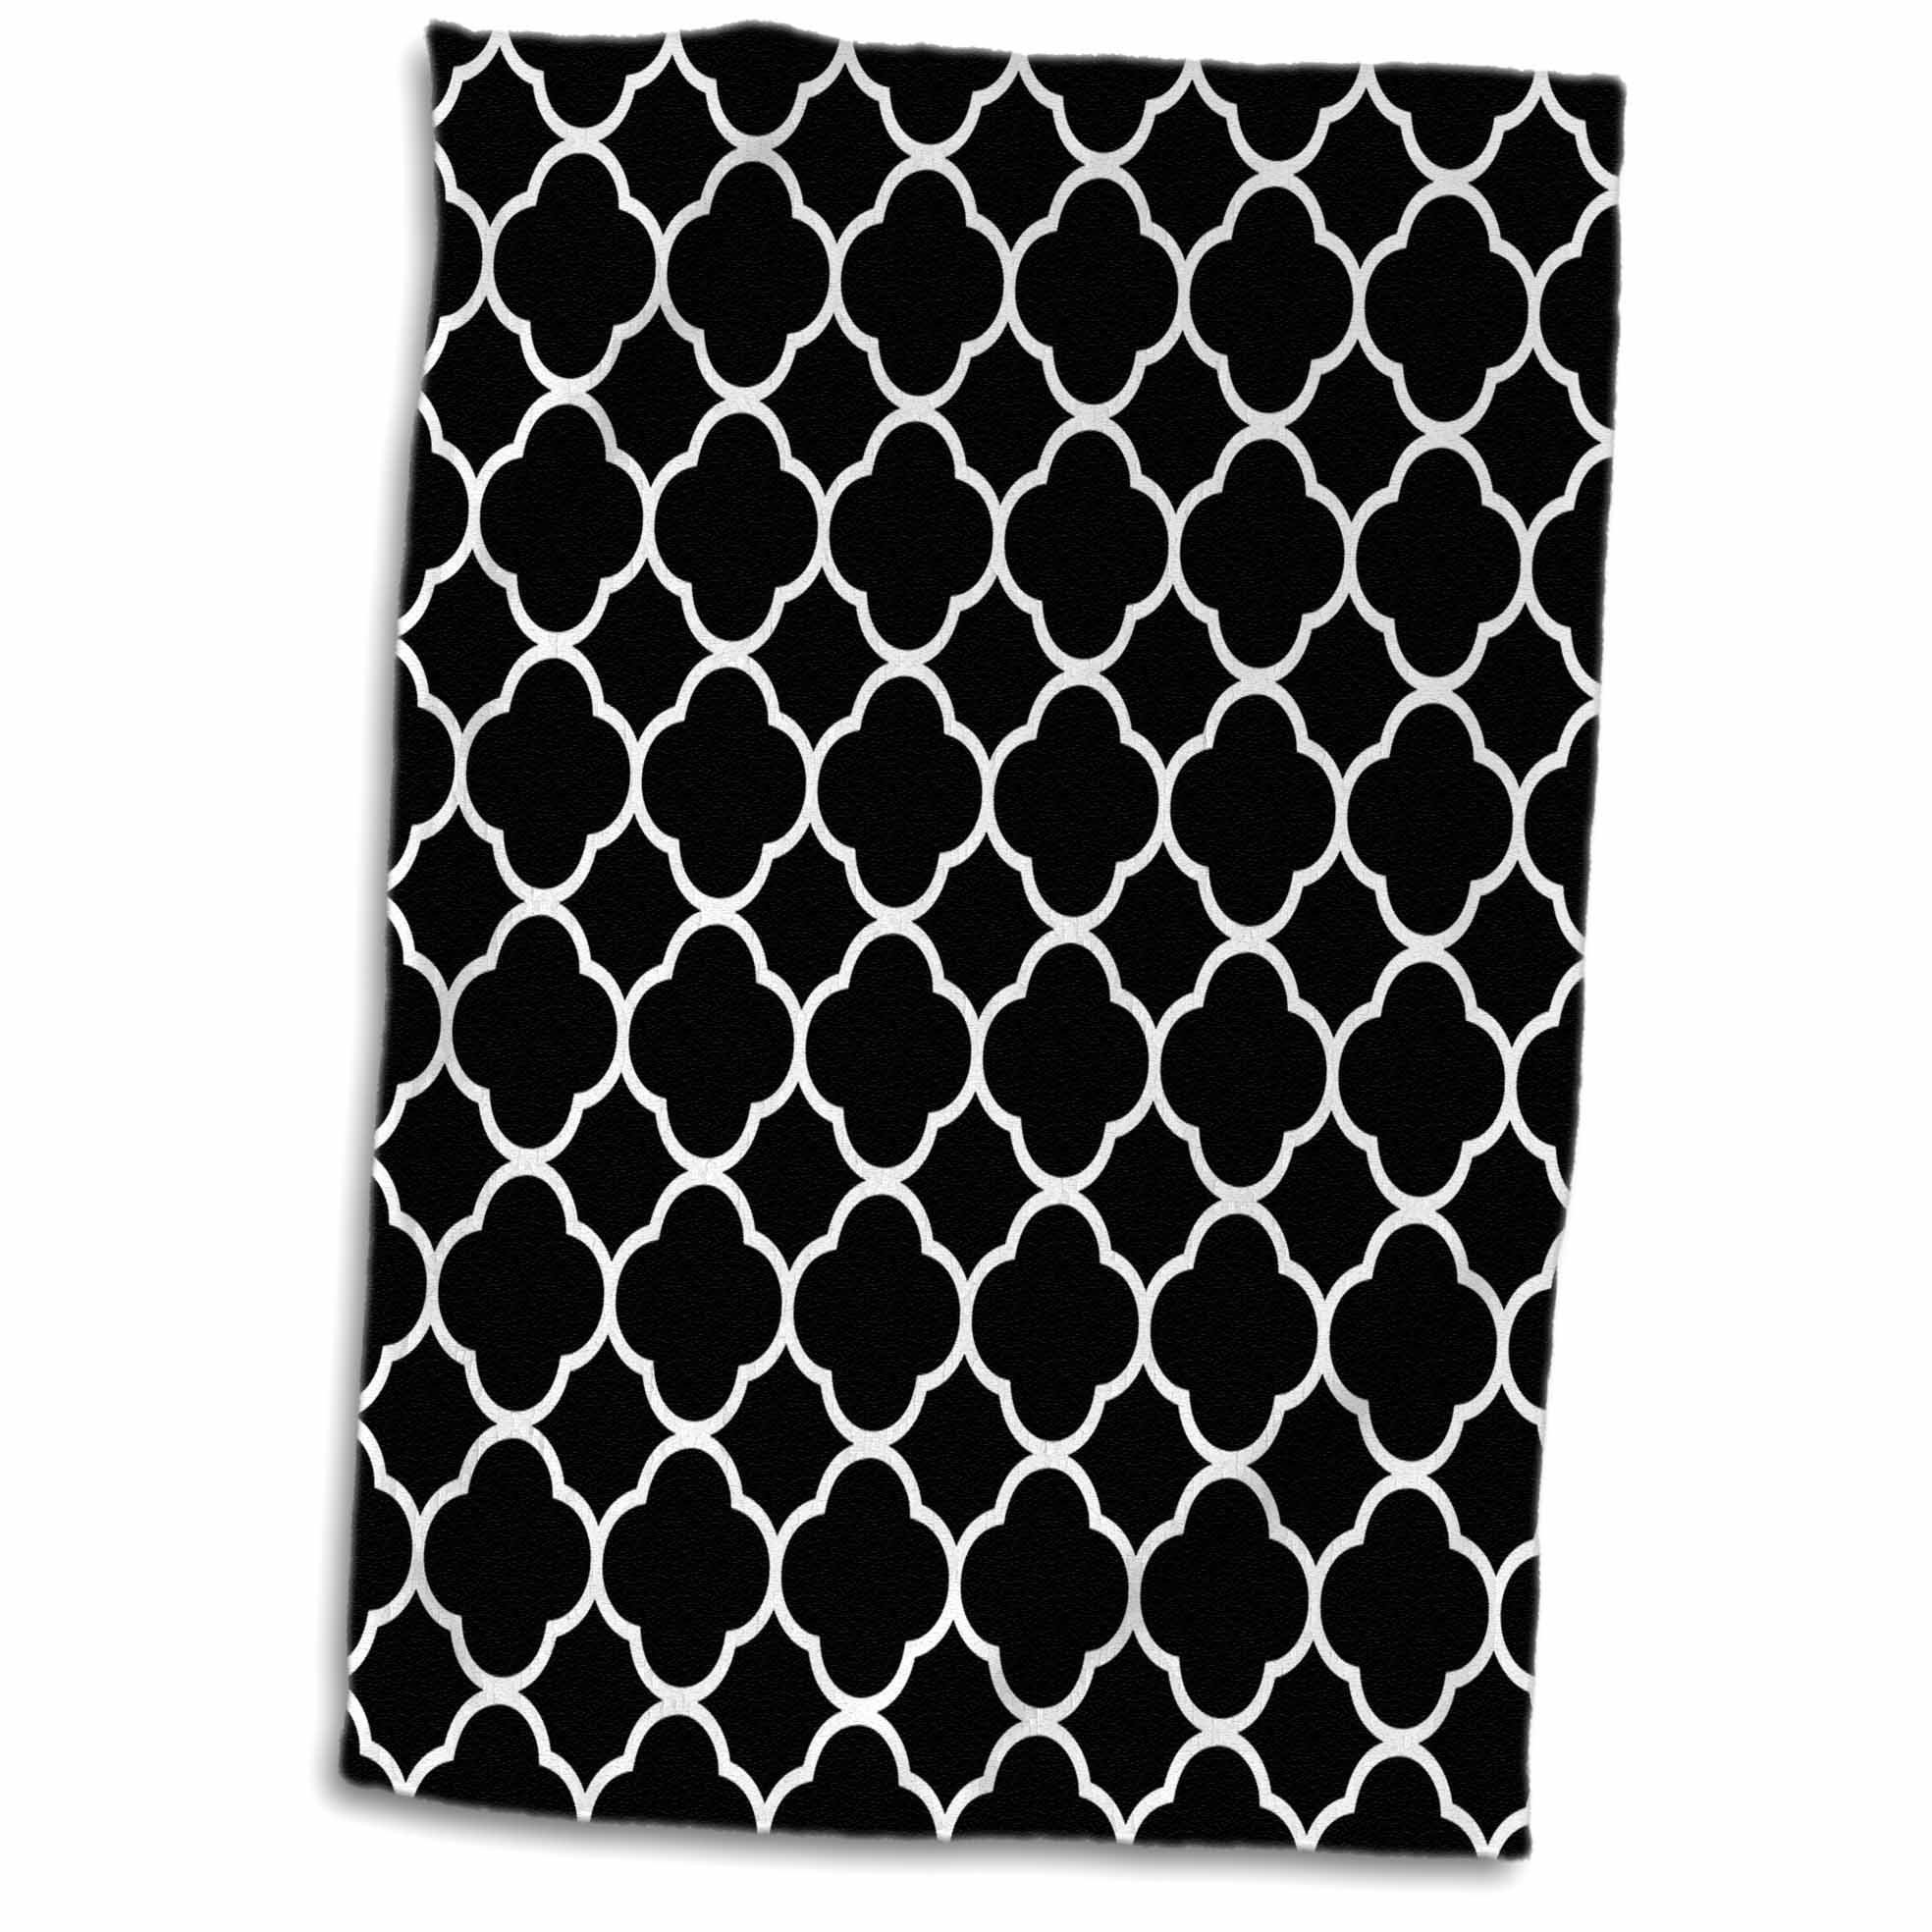 3D Rose Image of Black and White Quatrefoil Pattern Hand Towel, 15'' x 22'', Multicolor